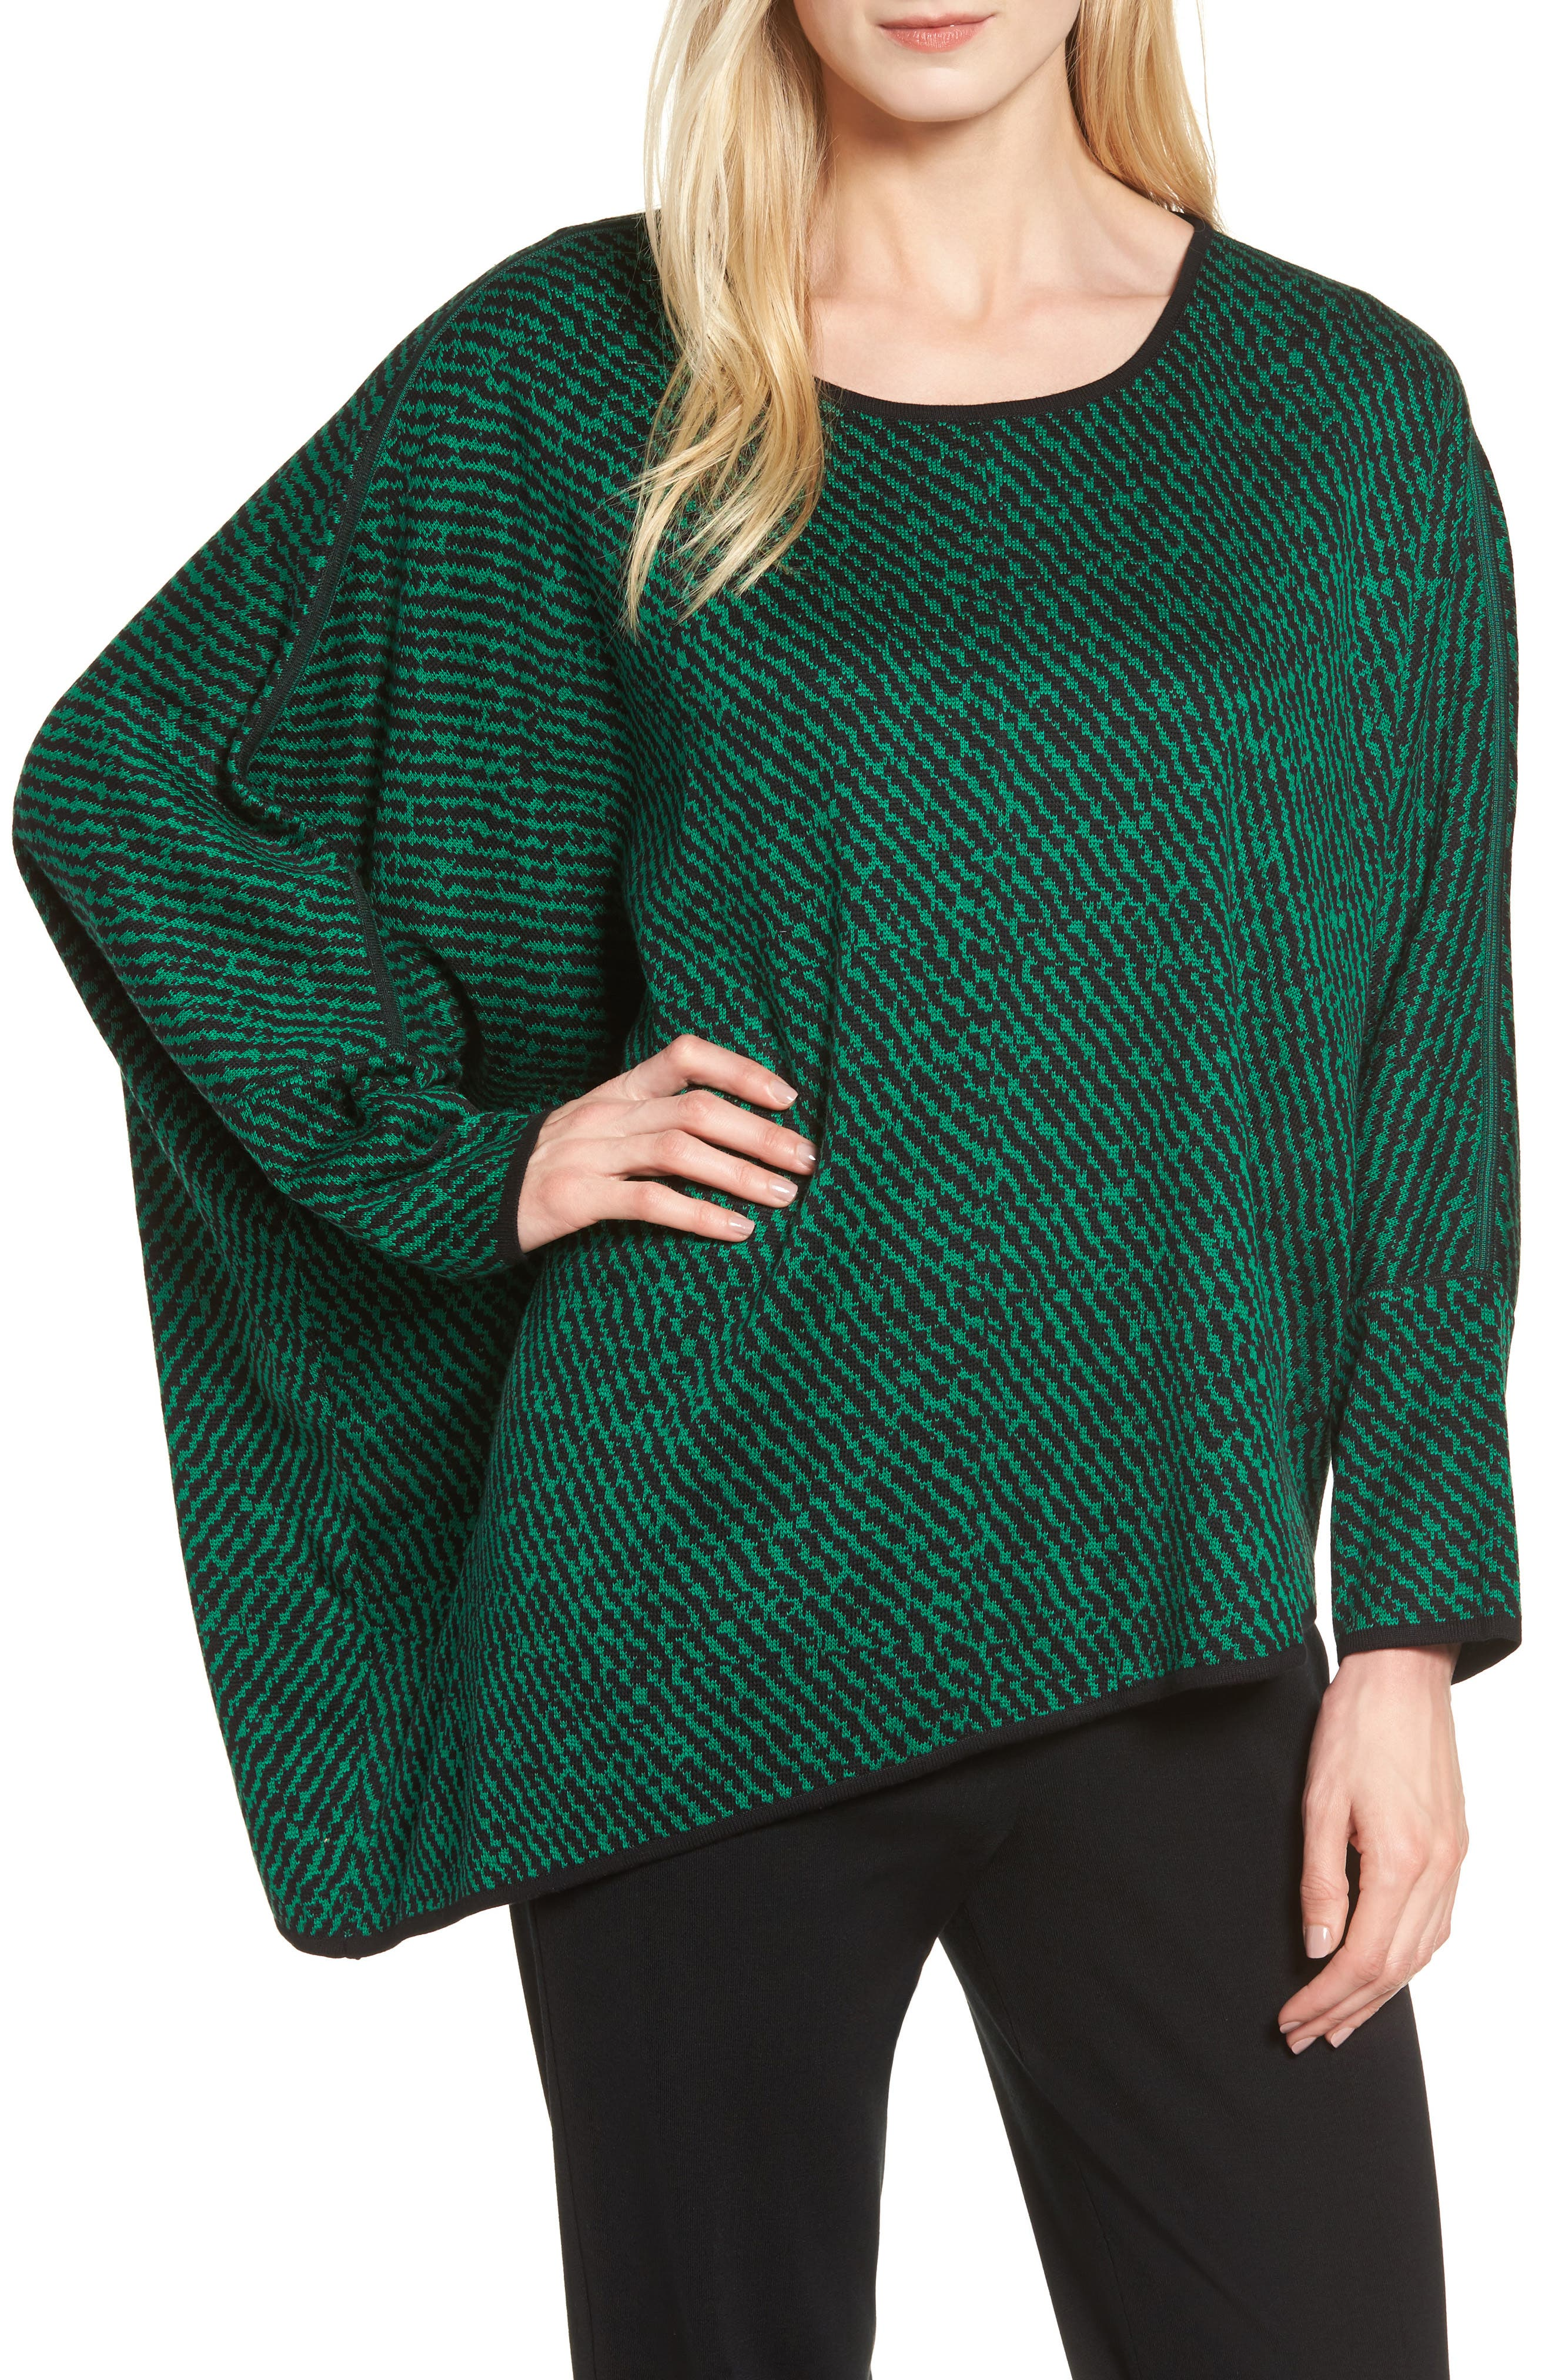 Asymmetrical Sweater,                             Main thumbnail 1, color,                             Black/ Viridian